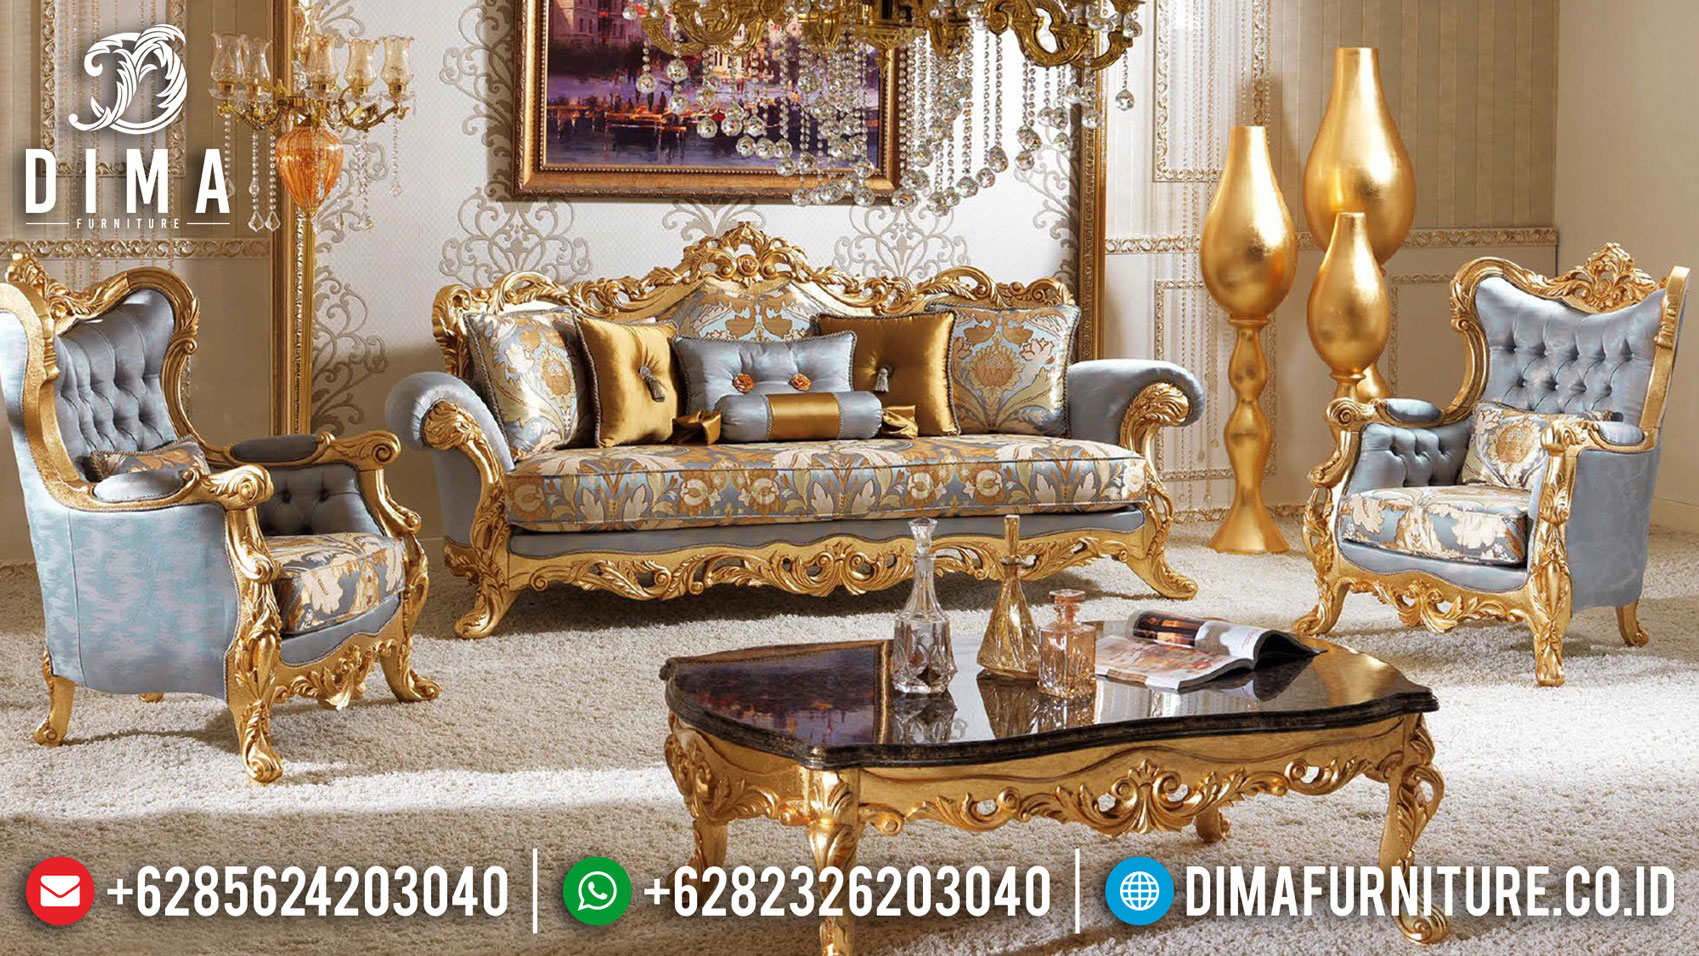 New Set Kursi Sofa Tamu Ukir Jepara Elegant Design Majestic Room TTJ-1054